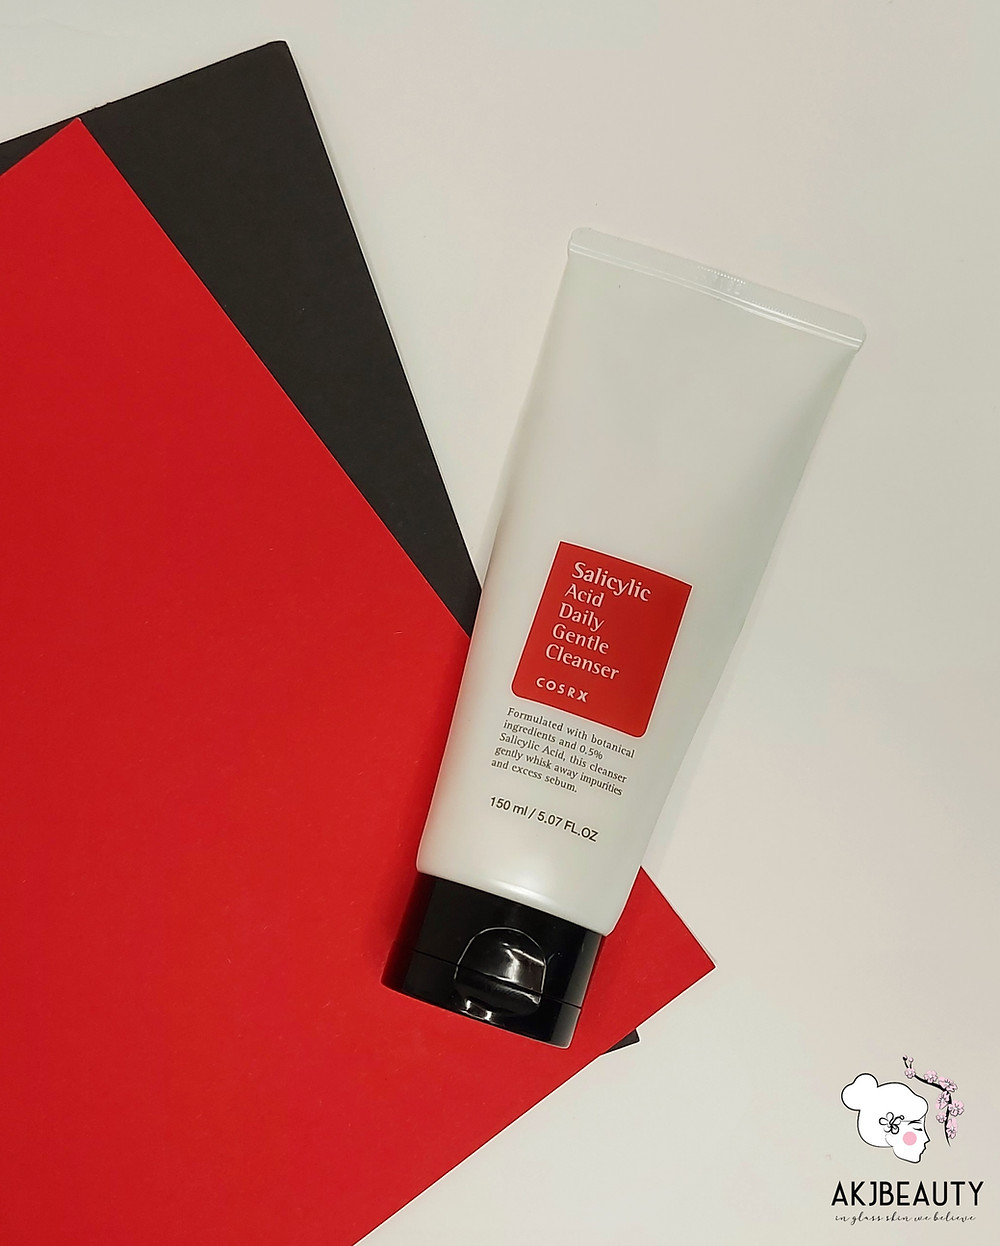 COSRX - Salicylic Acid Daily Gentle Cleanser #review